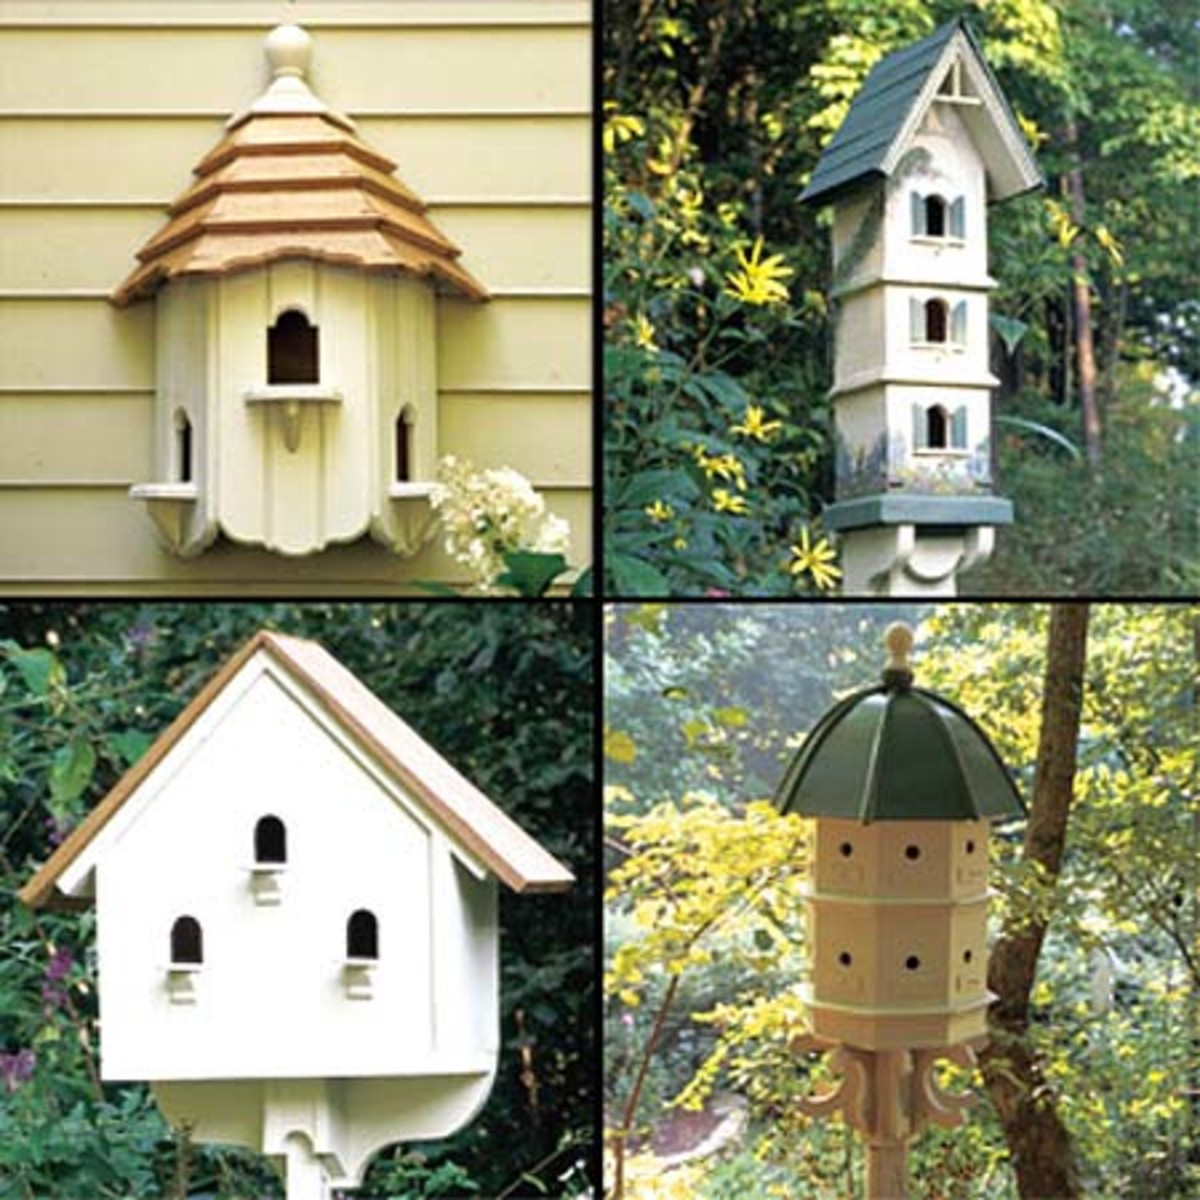 Build or purchase bird houses and put them up around your yard and garden to encourage birds to live there. Be sure you can open up the bird houses each year and clean them out.